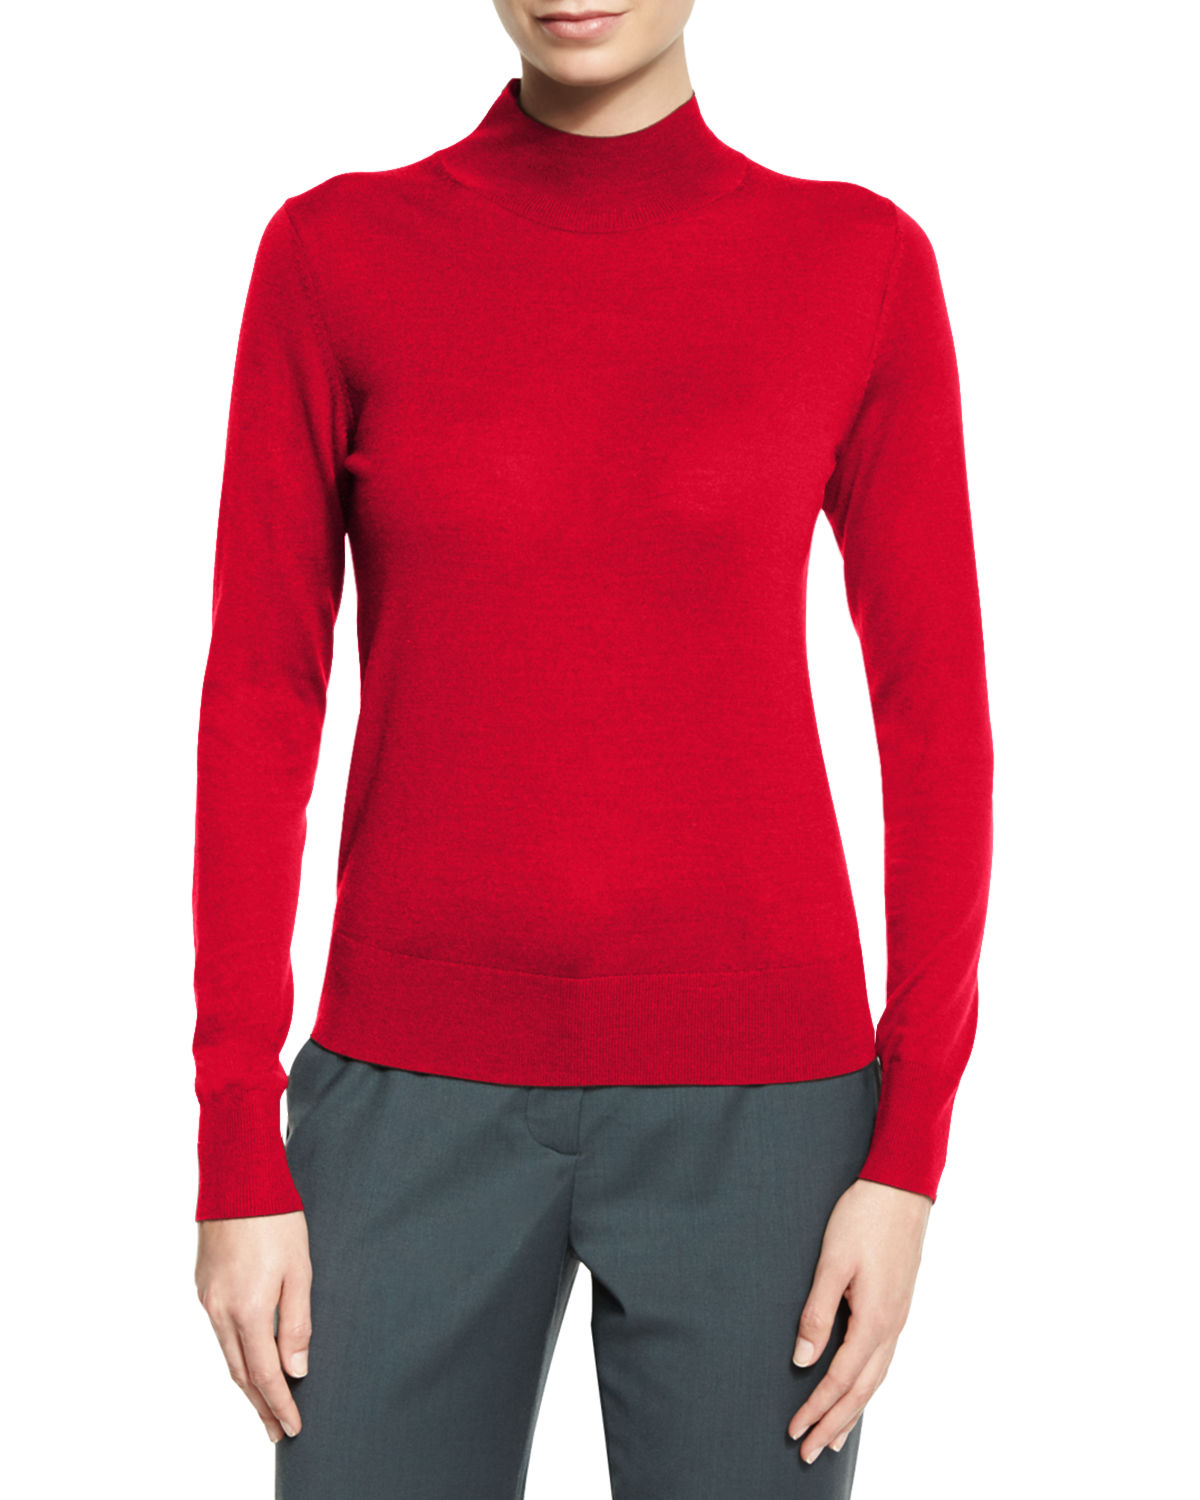 Sallie Refine Mock-Neck Sweater